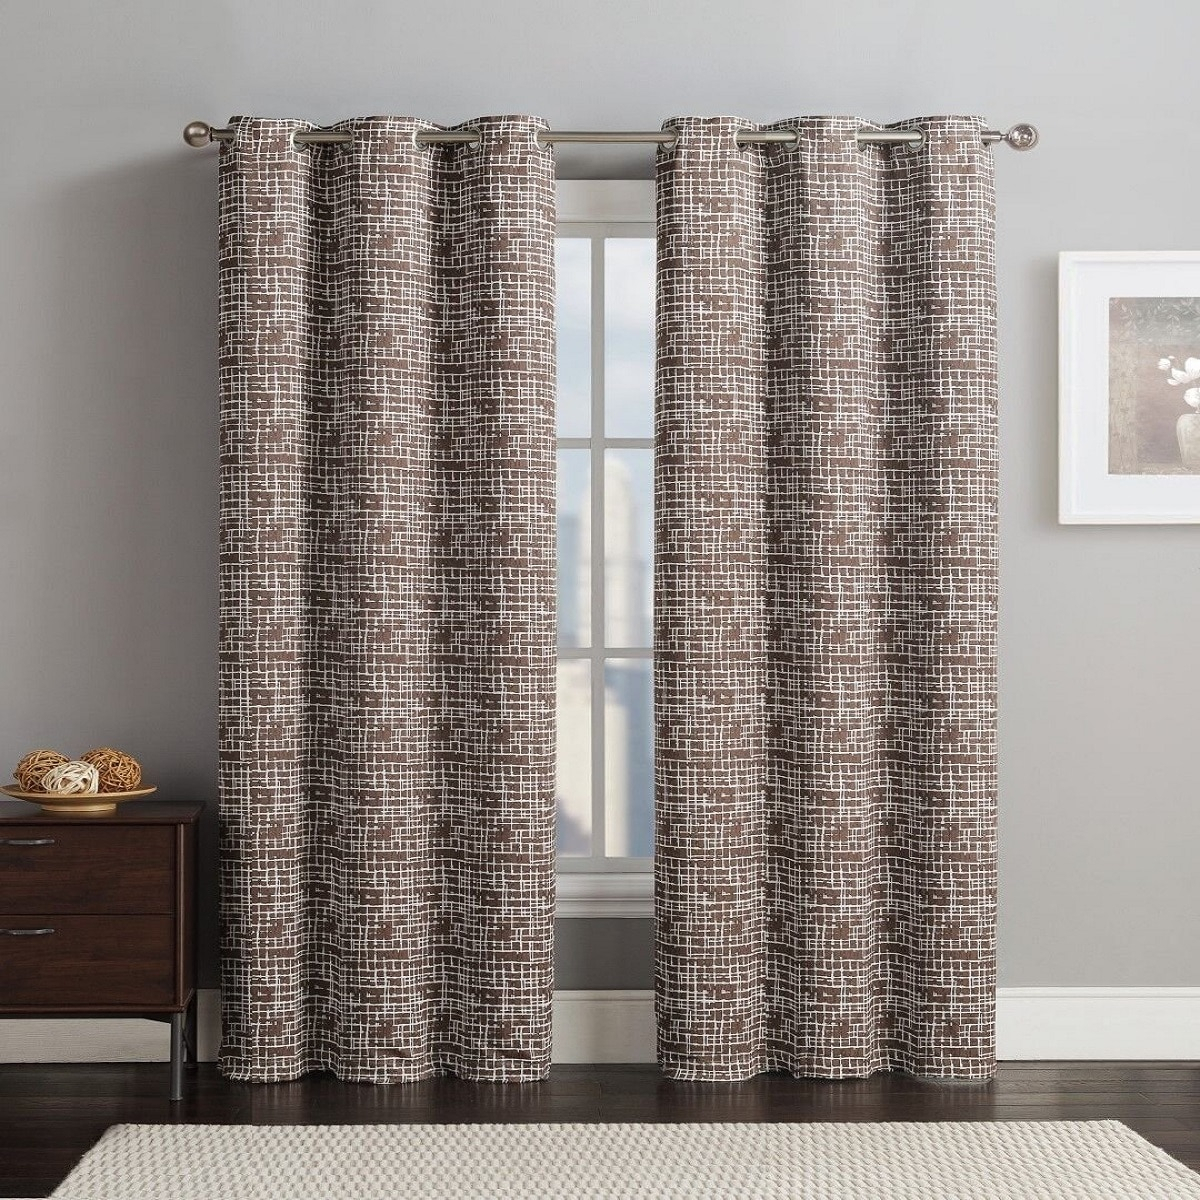 Lenox Thermal Room-Darkening Curtain Panels With Grommets (Set Of 2) -  76X96 - Chocolate throughout Grommet Room Darkening Curtain Panels (Image 10 of 20)